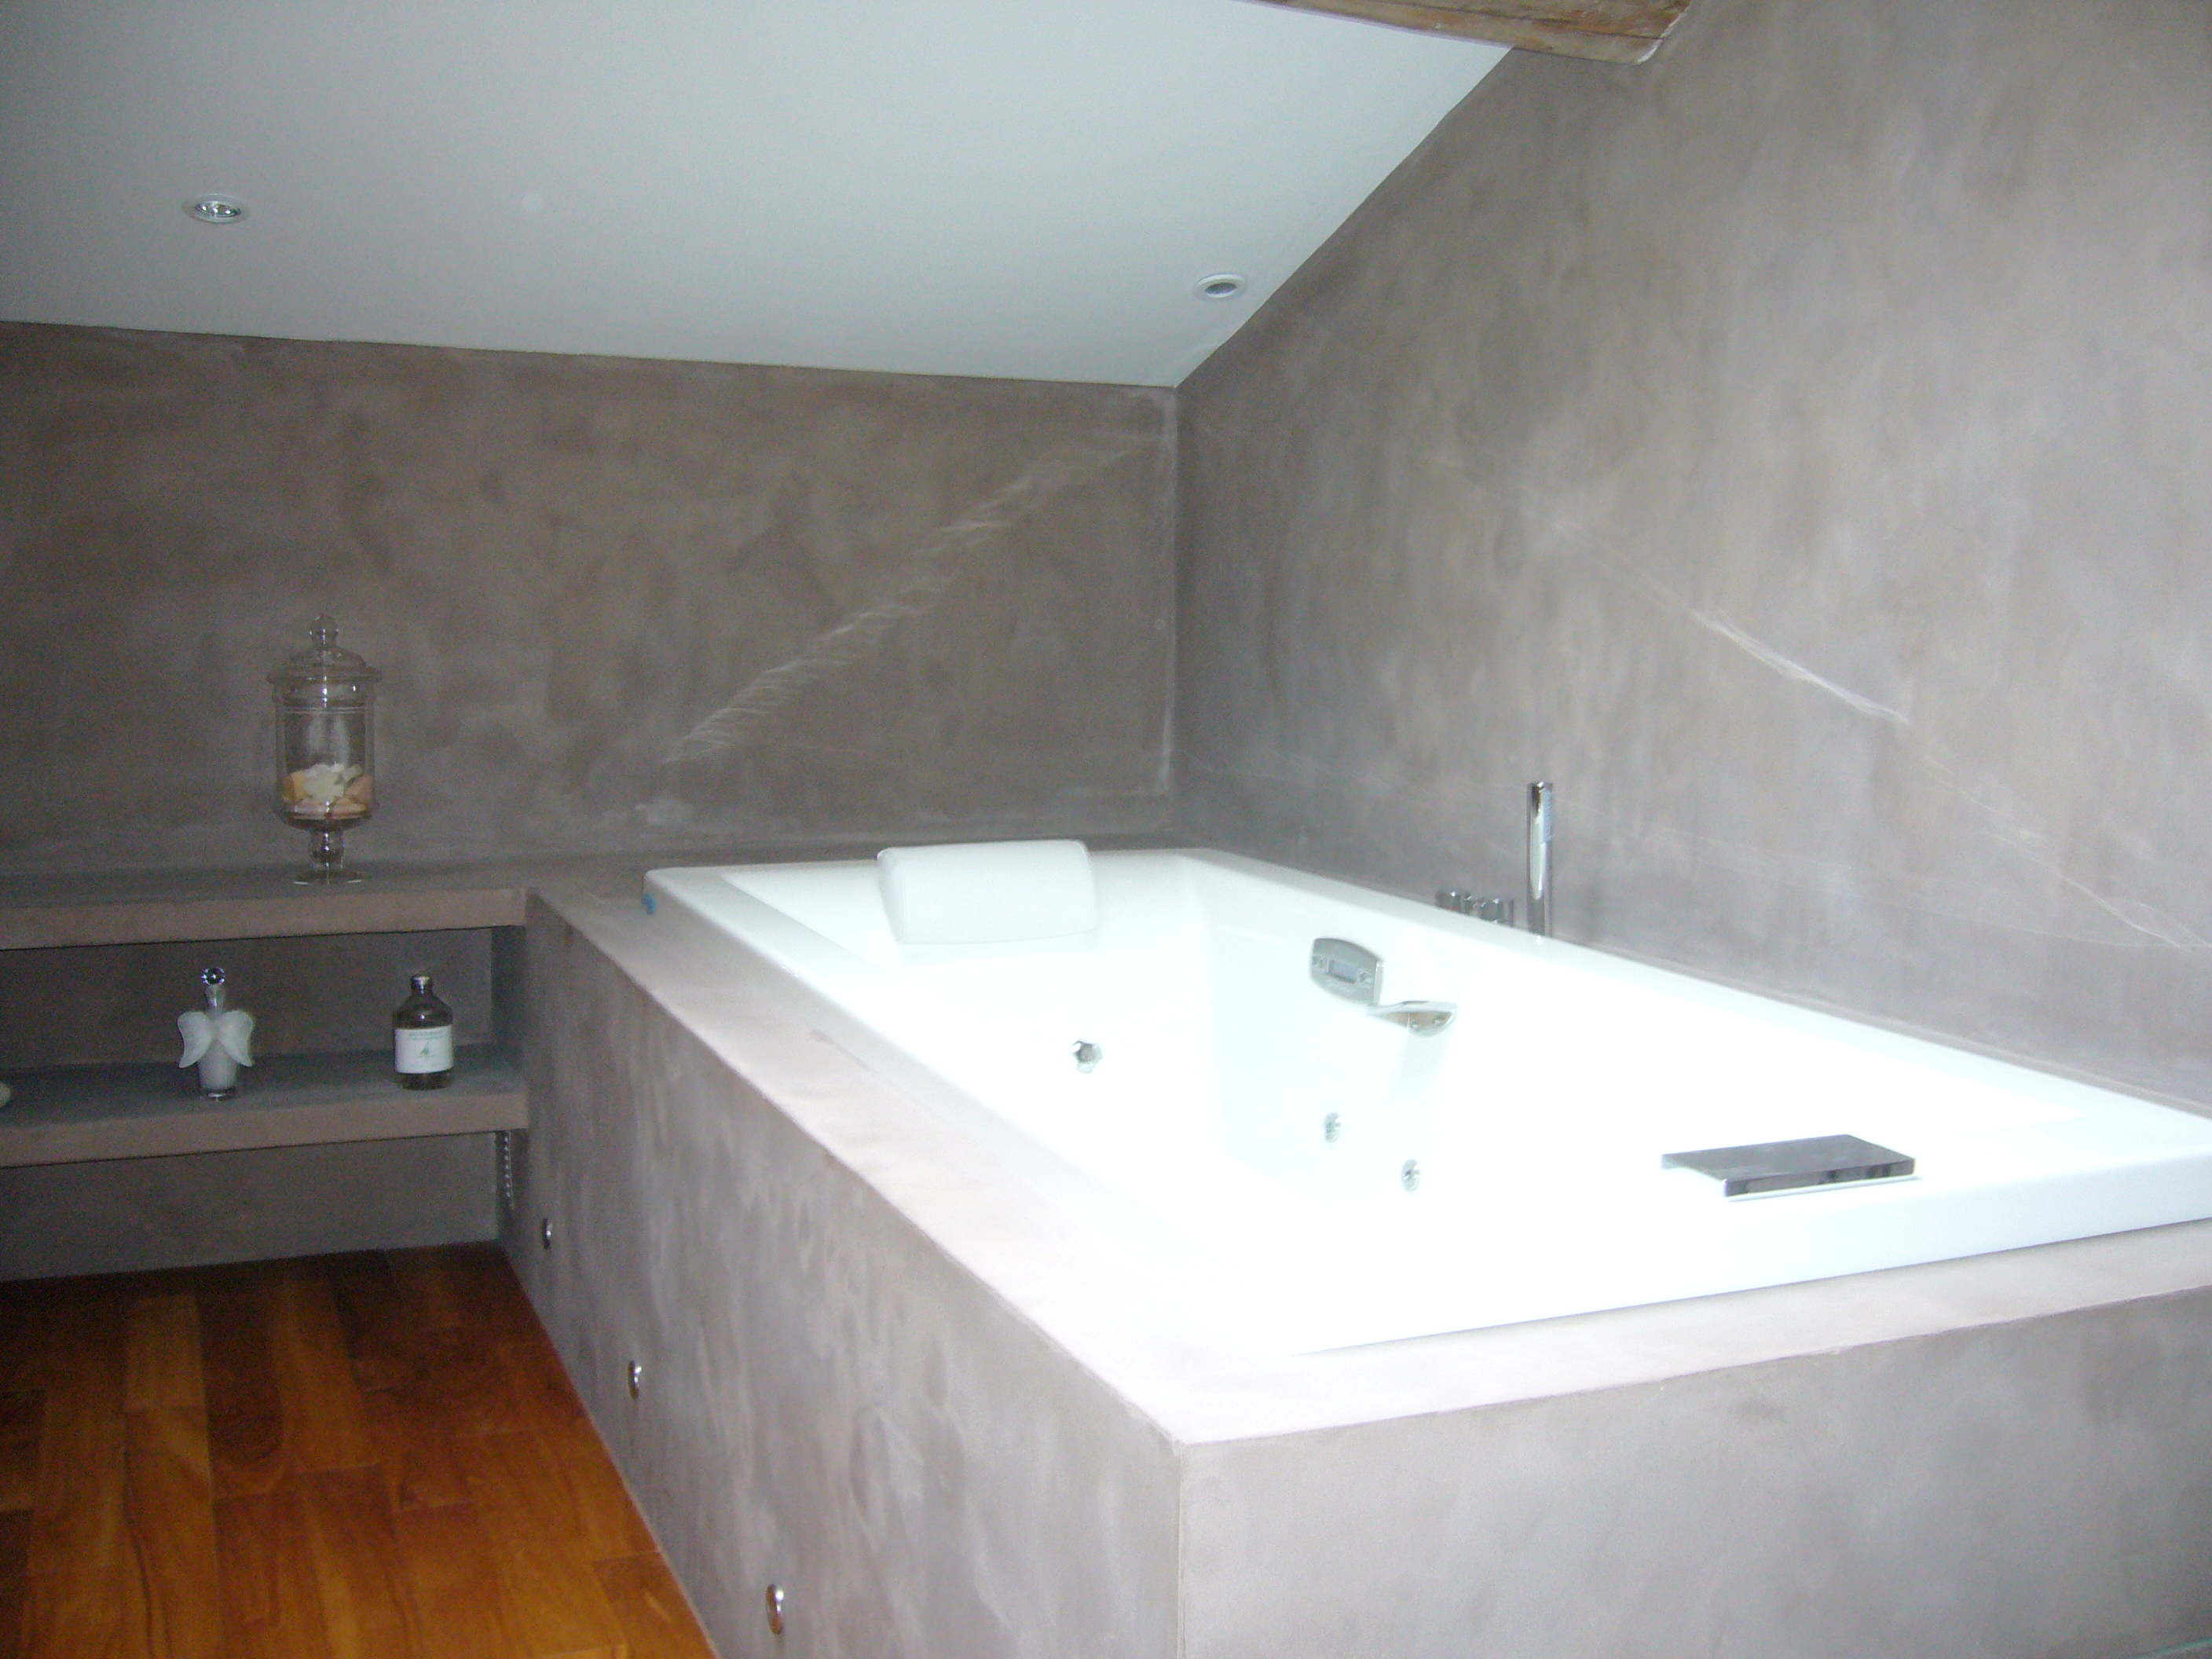 1000 images about salle de bain on pinterest for Salle de bain mur beton cire